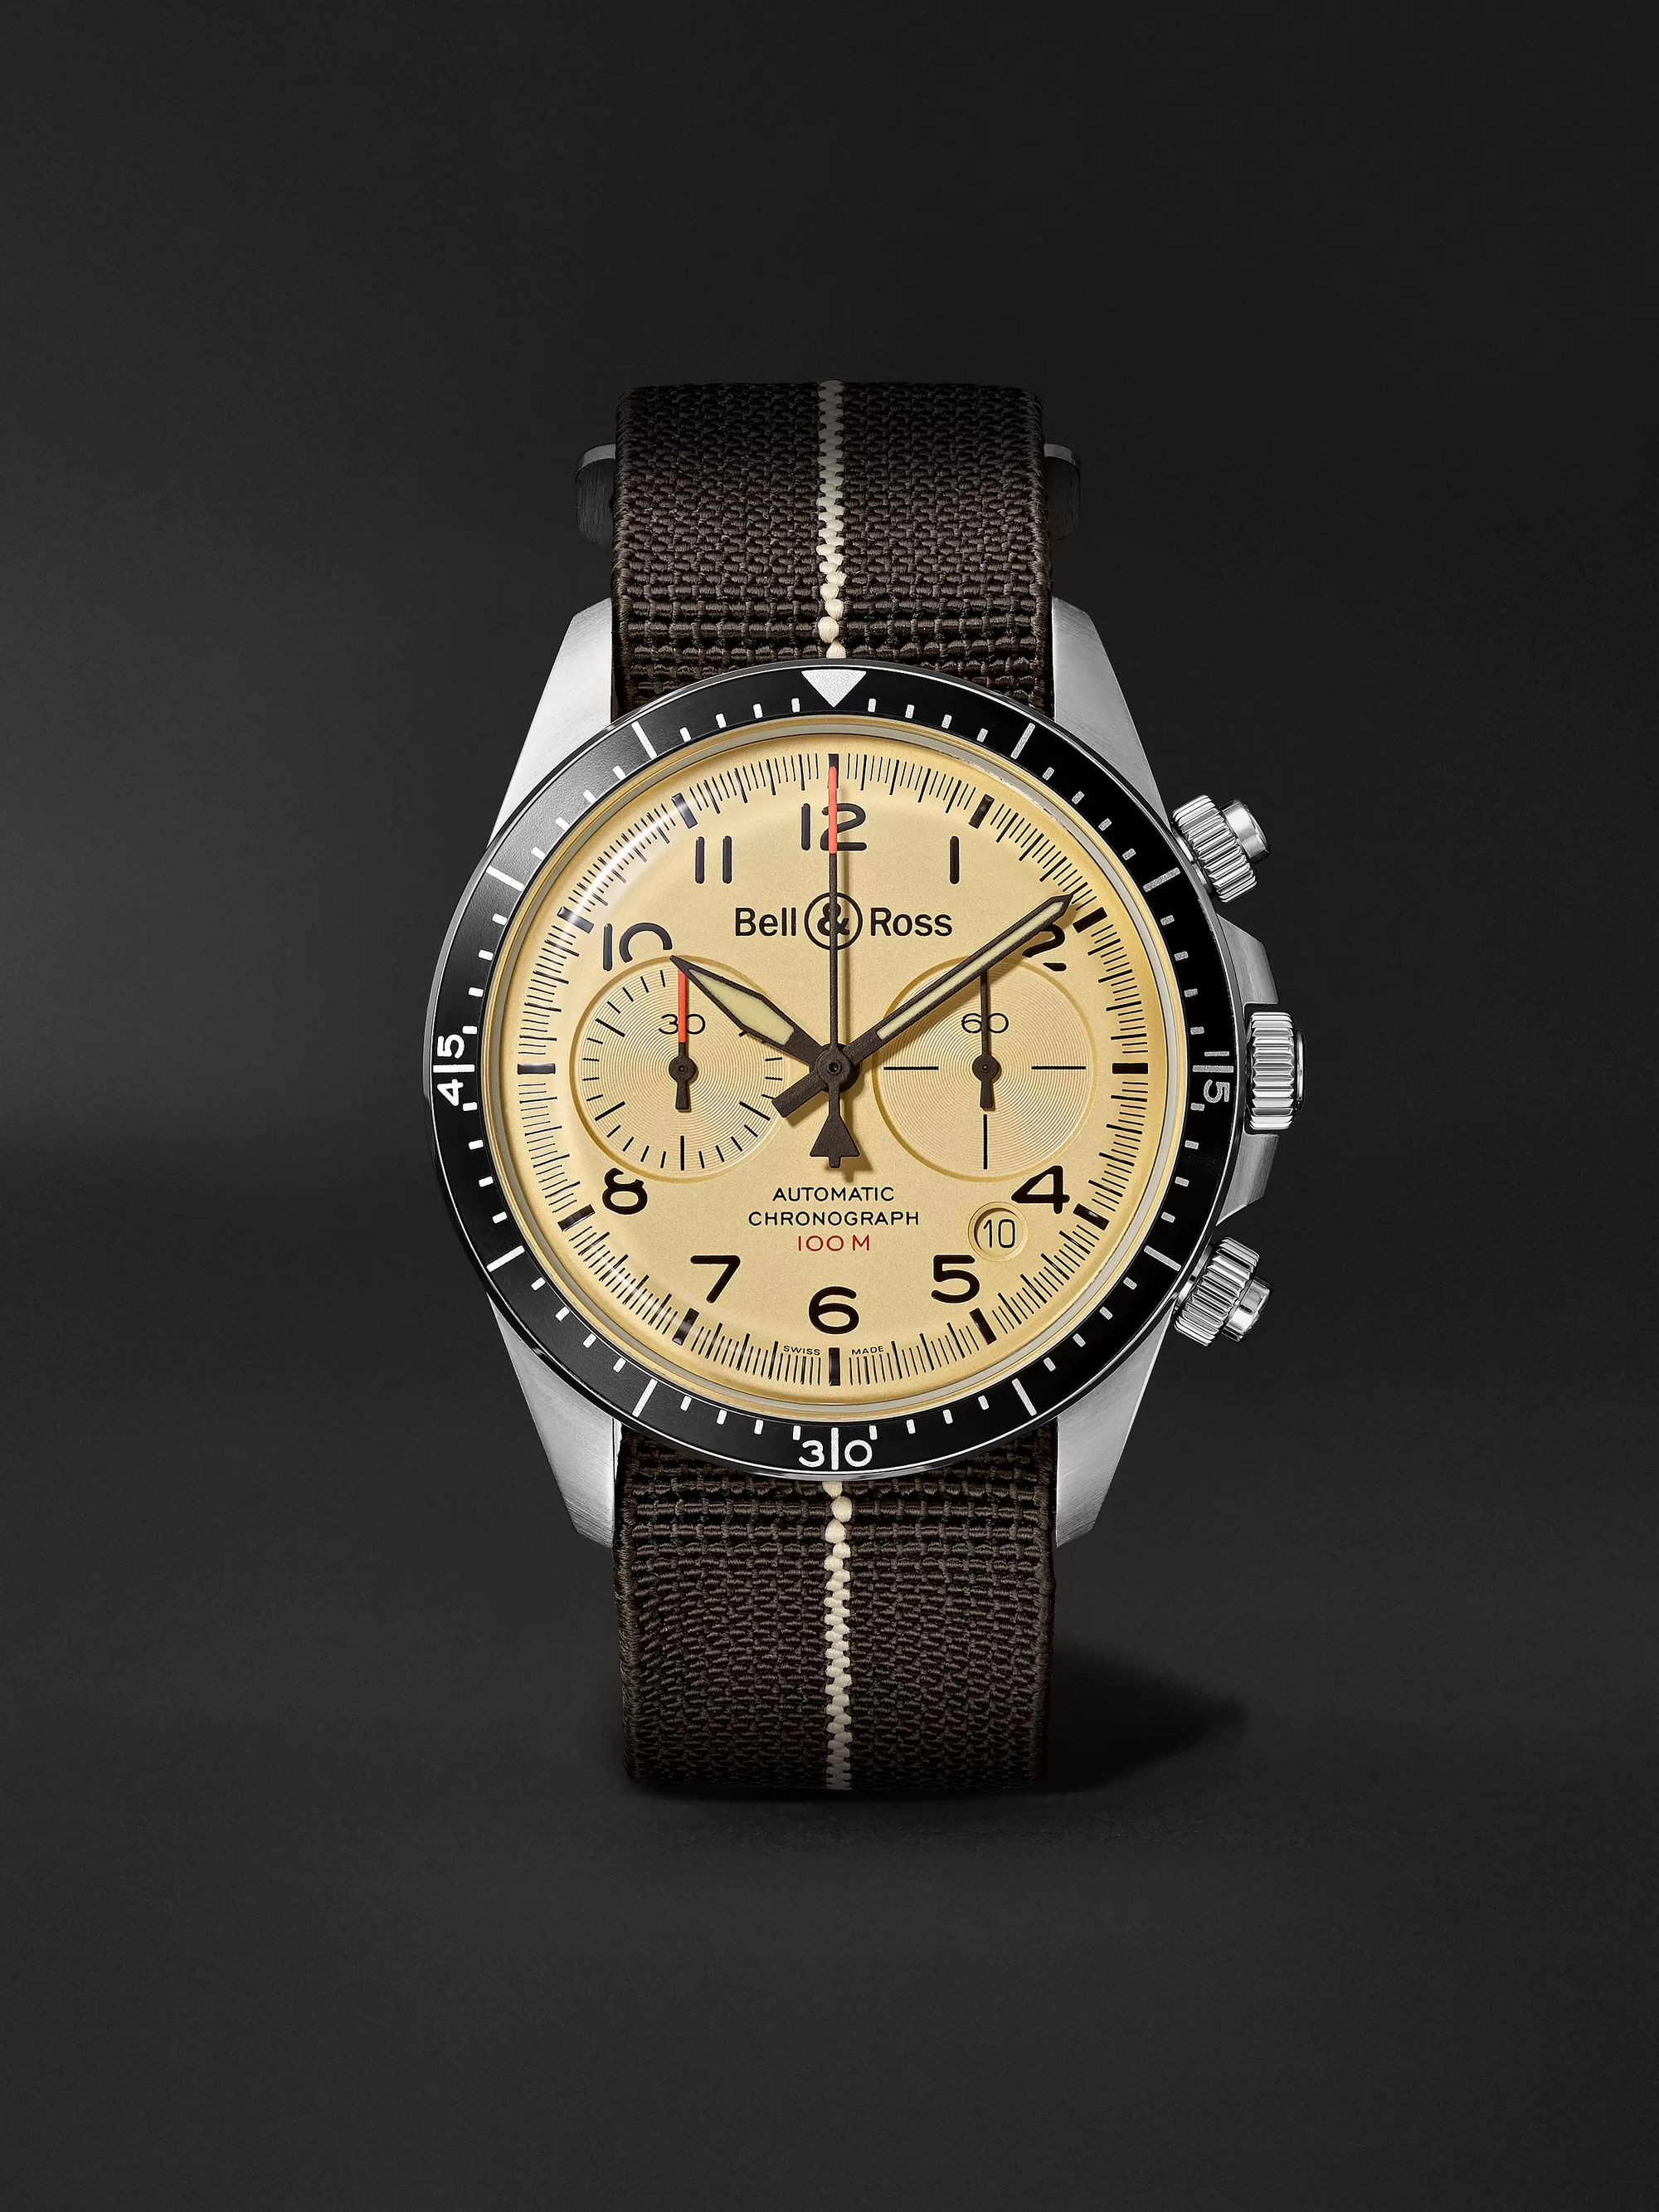 Bell And Ross Watches >> Br V2 94 Automatic Chronograph 41mm Stainless Steel And Canvas Watch Ref No Brv294 Bei St Sf